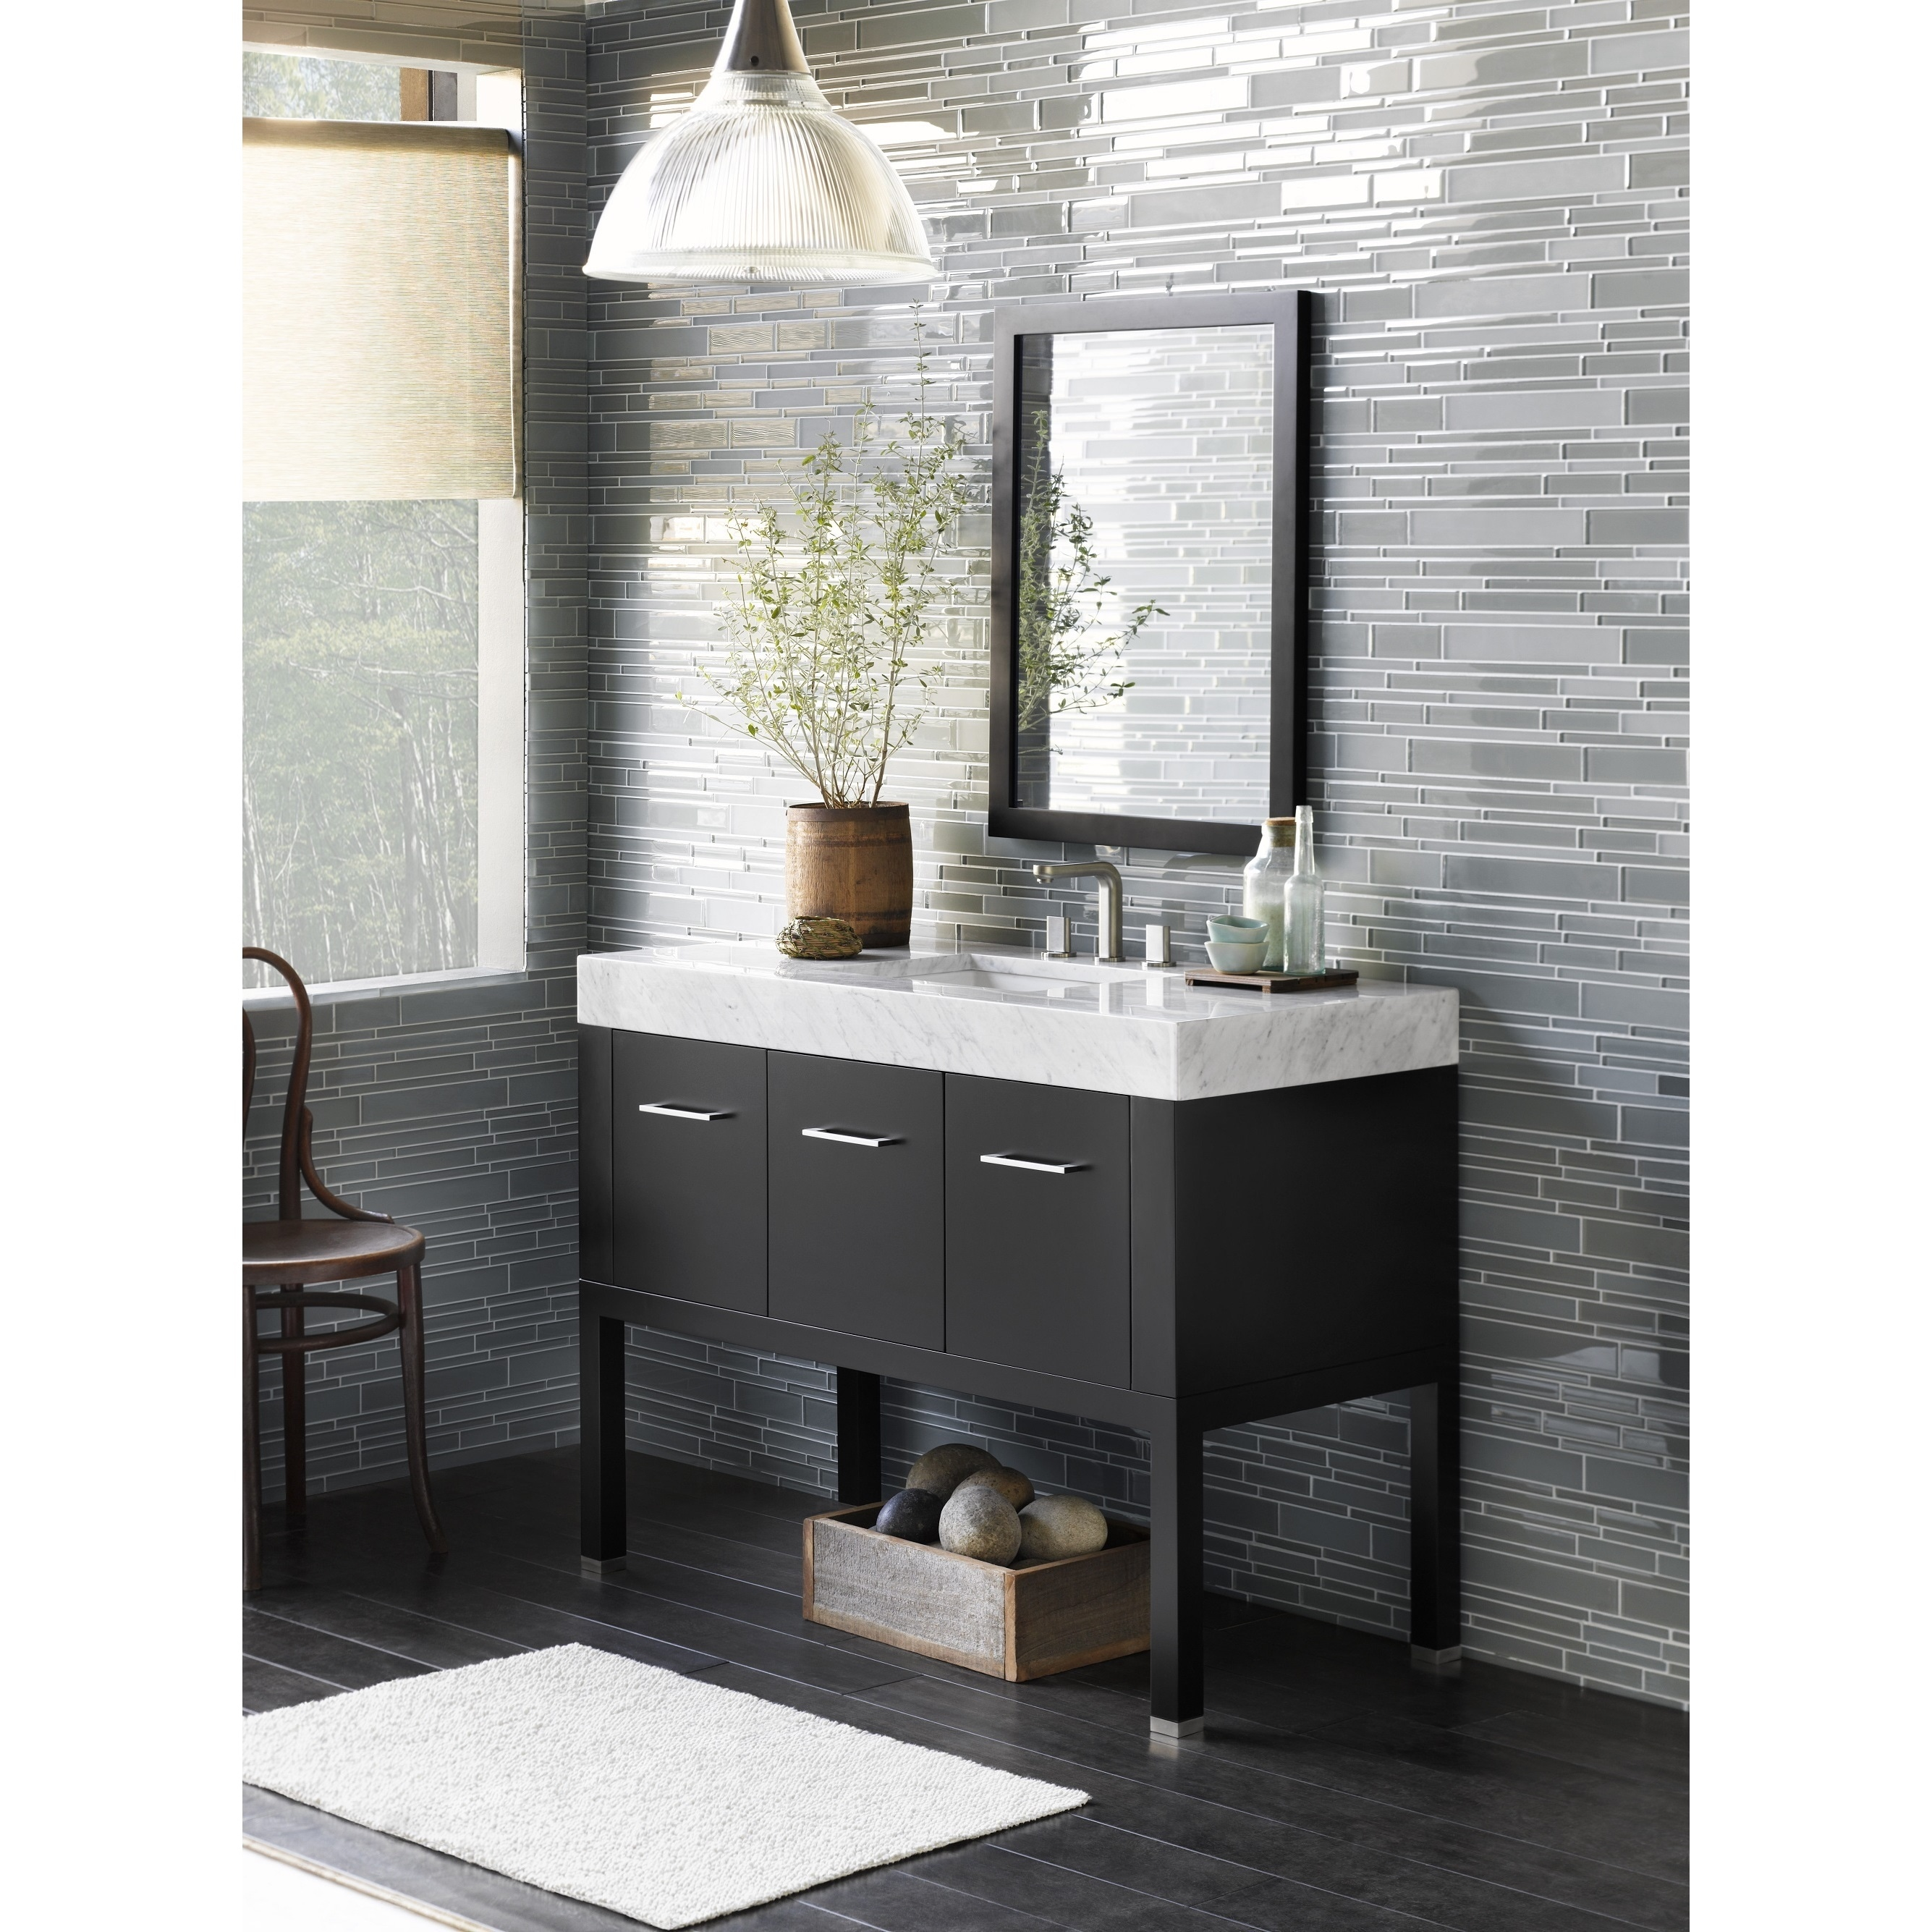 Ronbow Calabria 48 Inch Bathroom Vanity Set In Black With Mirror Marble Countertop With Ceramic Bathroom Sink In White Overstock 13984510